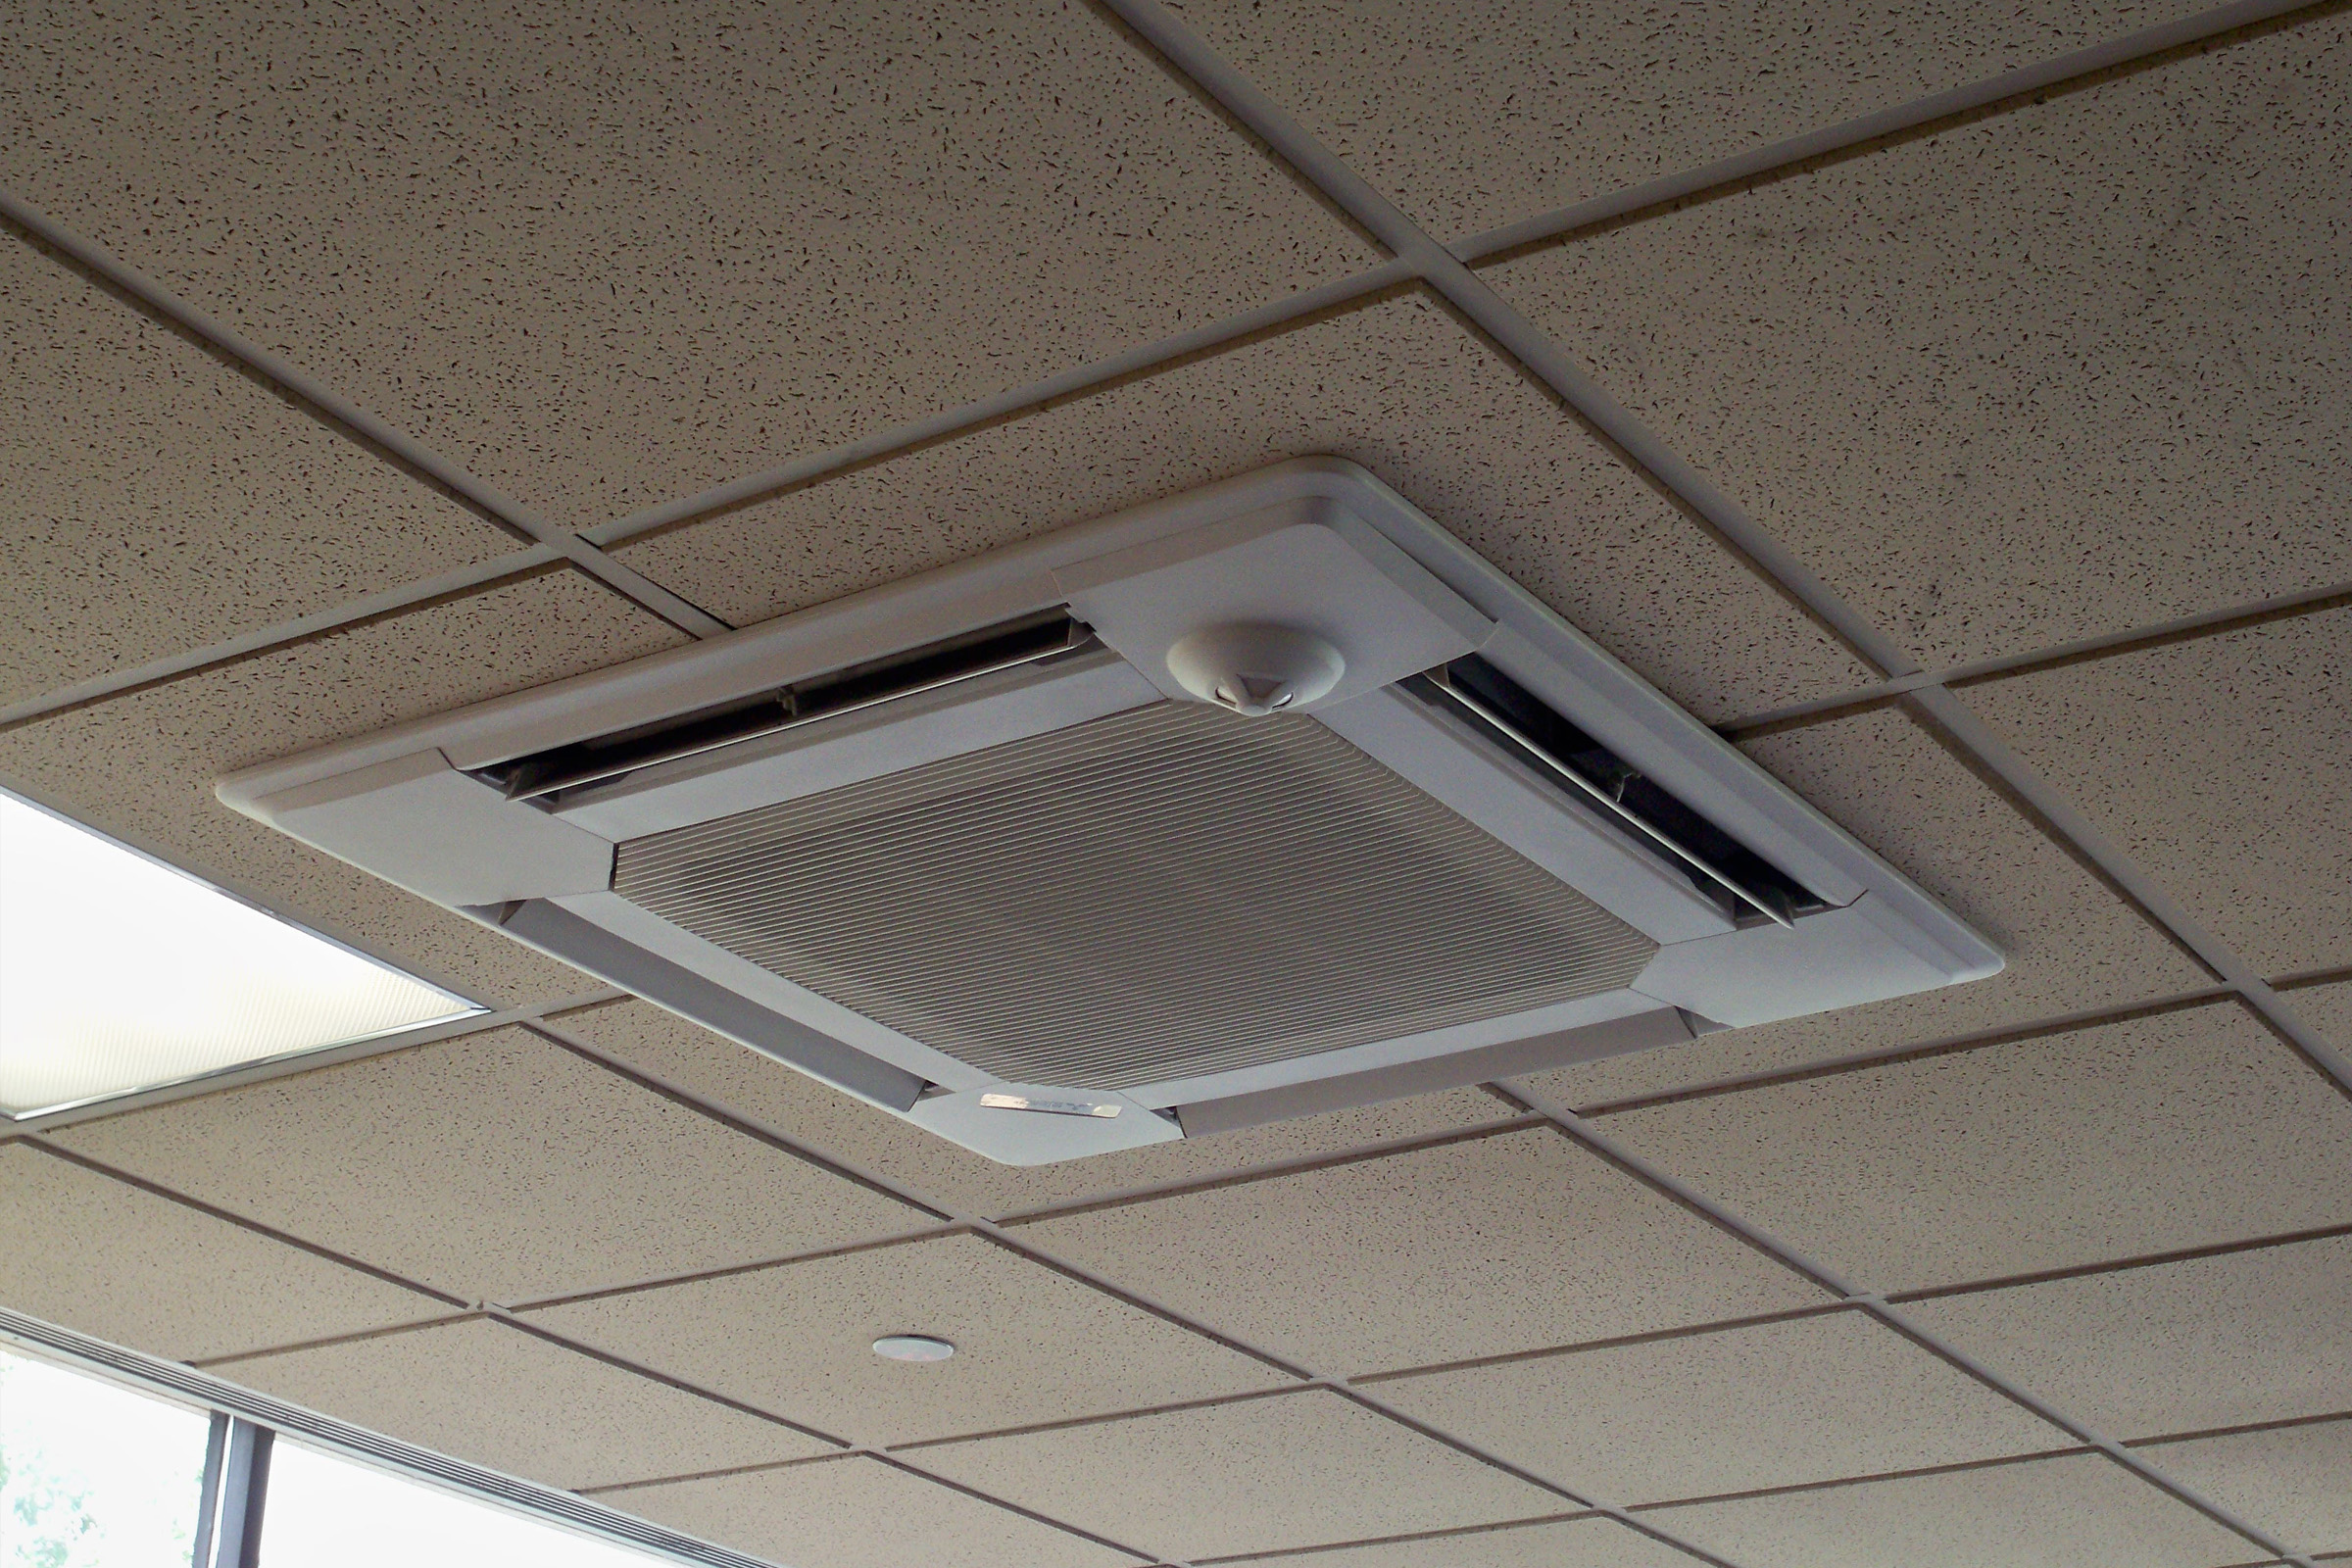 Upgraded HVAC system with ceiling mounted ductless air conditioning and heating units for restaurant dining area